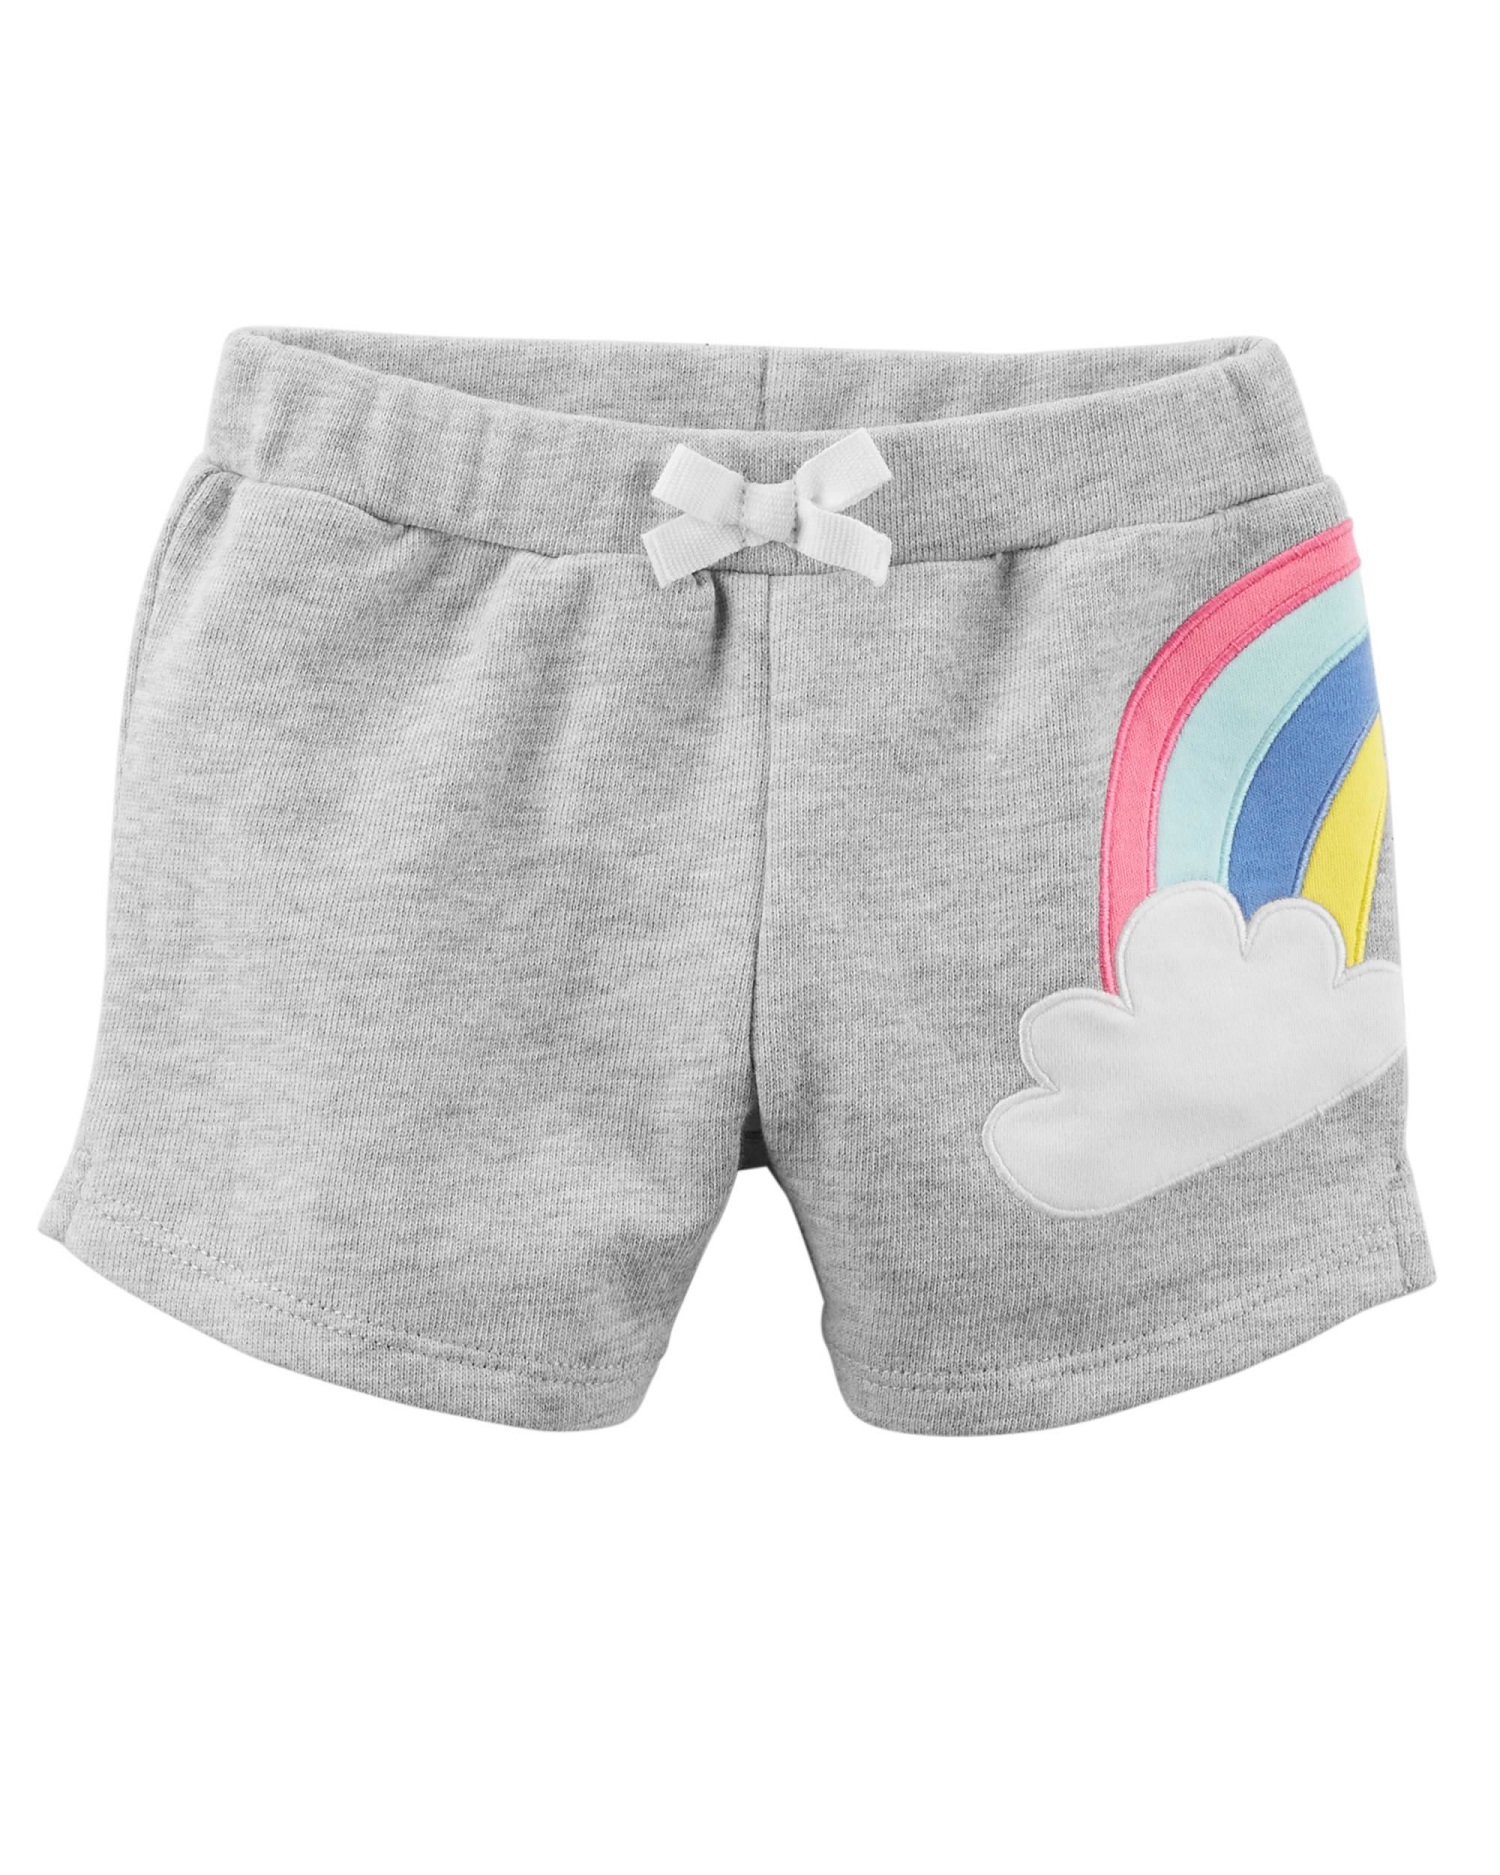 Carter's Baby Girls' Rainbow French Terry Shorts, Gray